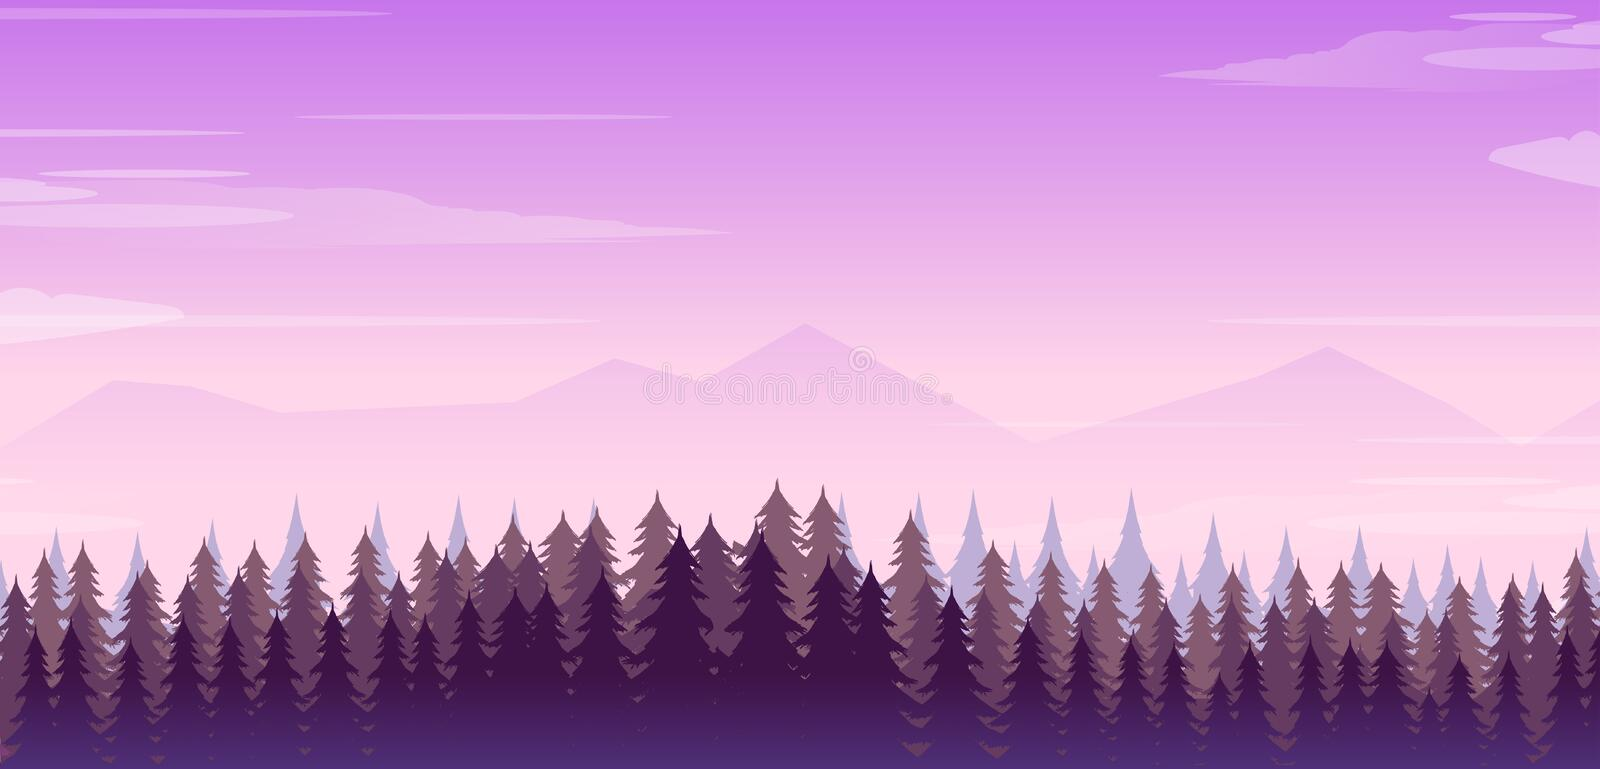 Wide realistic illustration of mountain landscape with forest and trees. Purple night sky vector illustration